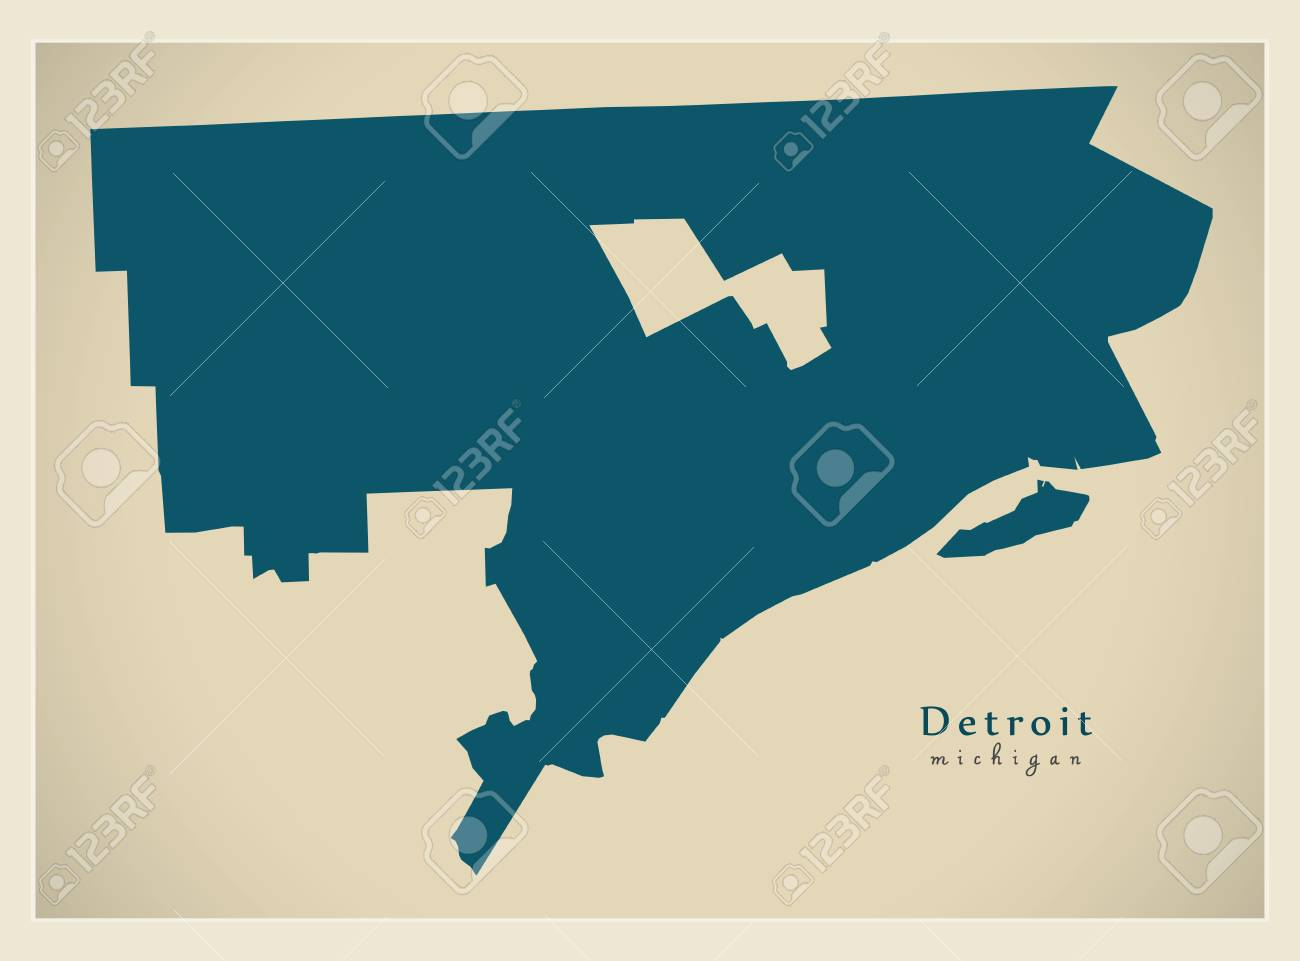 Detroit In Usa Map.Modern Map Detroit Michigan City Of The Usa Royalty Free Cliparts